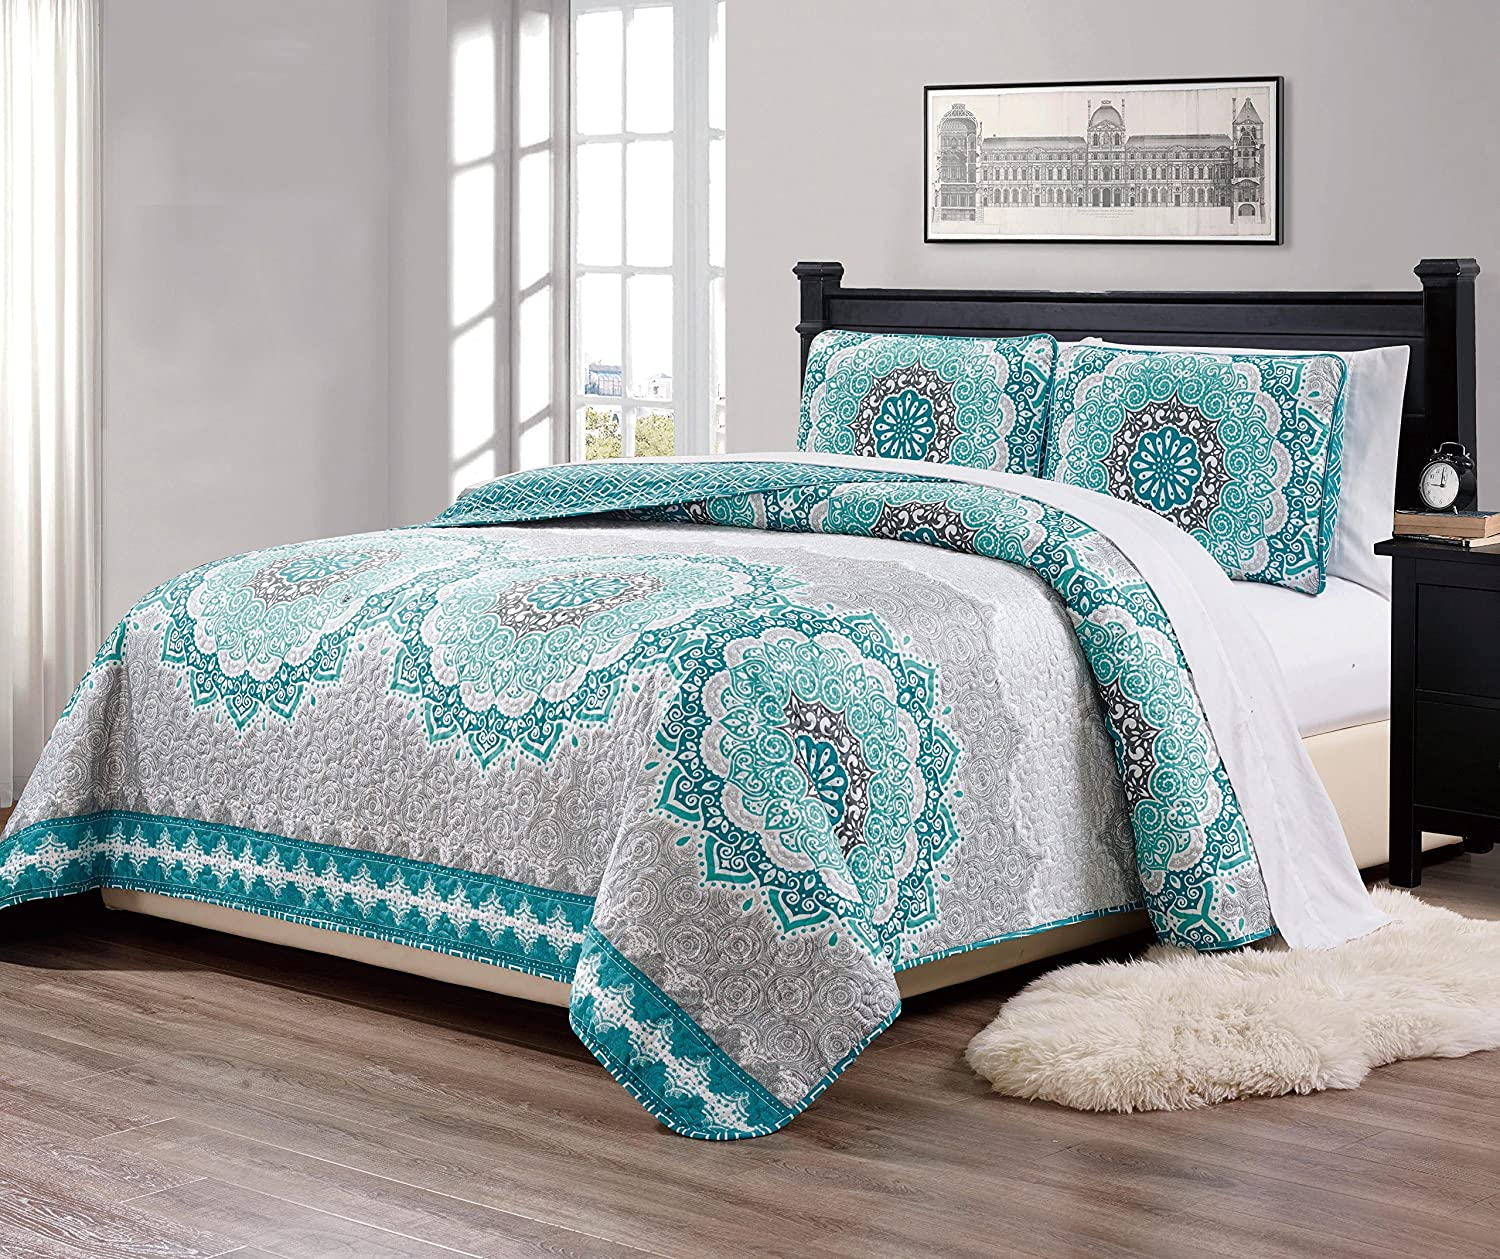 Linen Plus Full/Queen 3pc Over Size Quilted Bedspread Floral Turquoise Teal Aqua Coastal Plain/Gray Green New